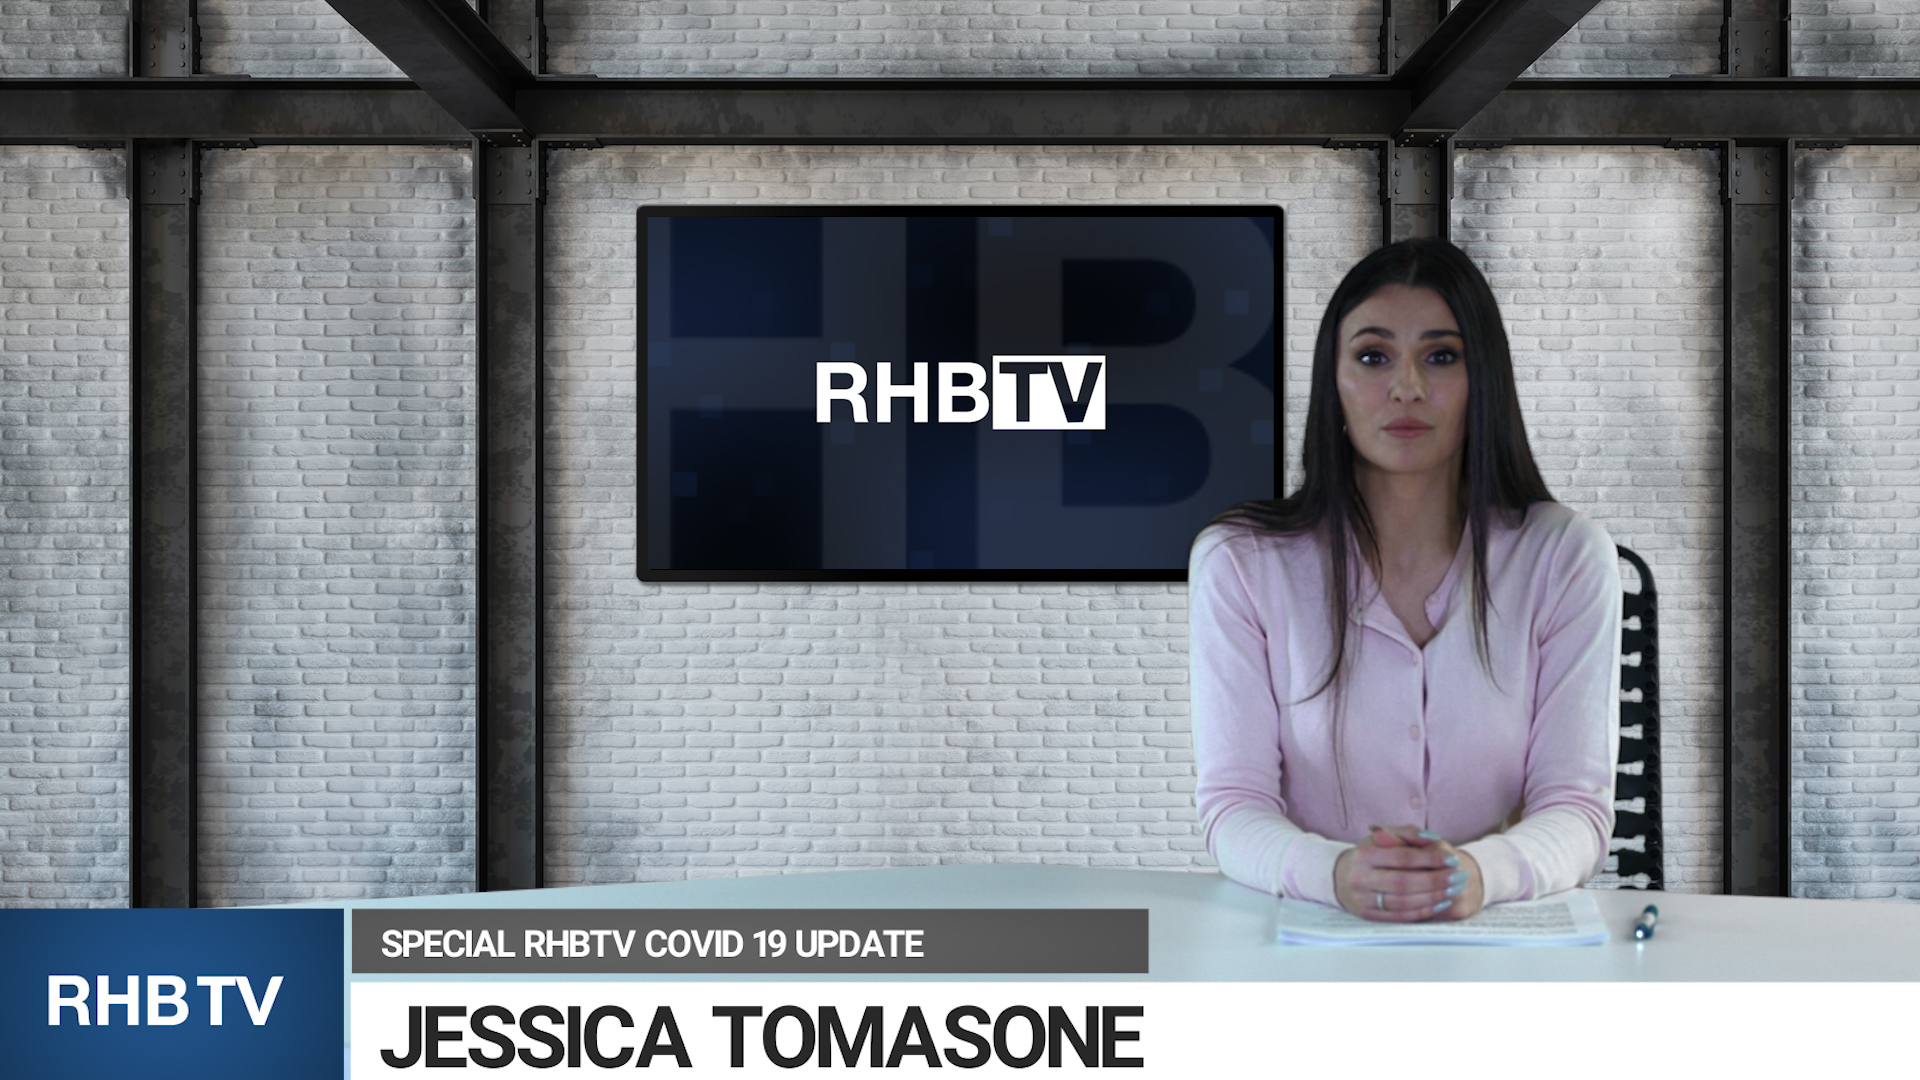 RHB TV SEASON 2: COVID-19 UPDATE